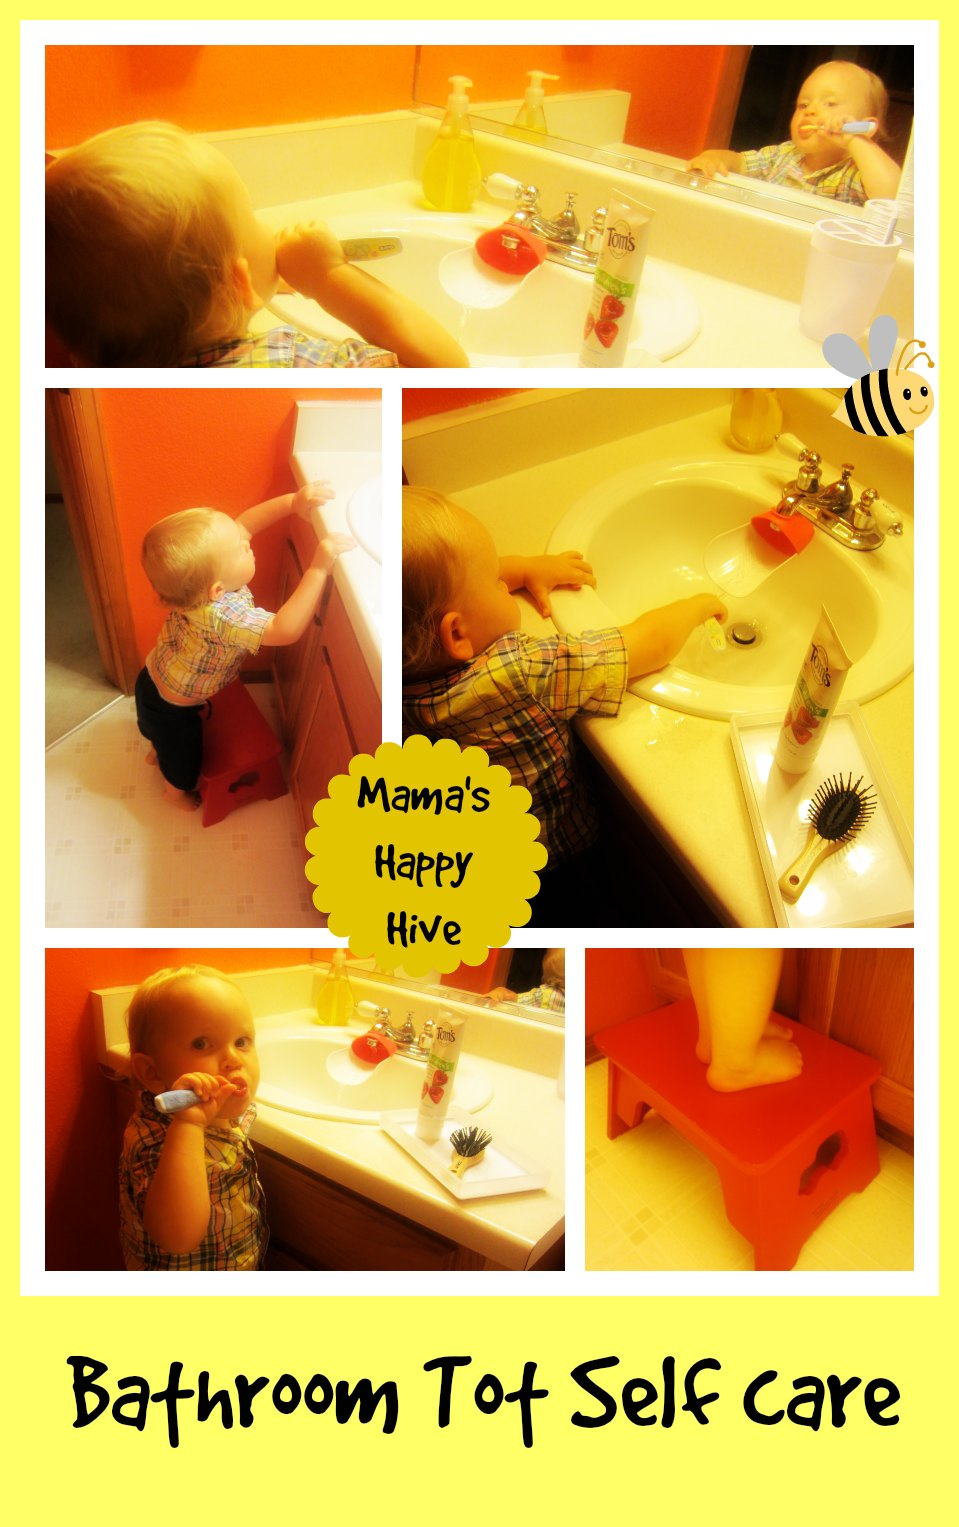 Bathroom Tot Self Care - www.mamashappyhive.com